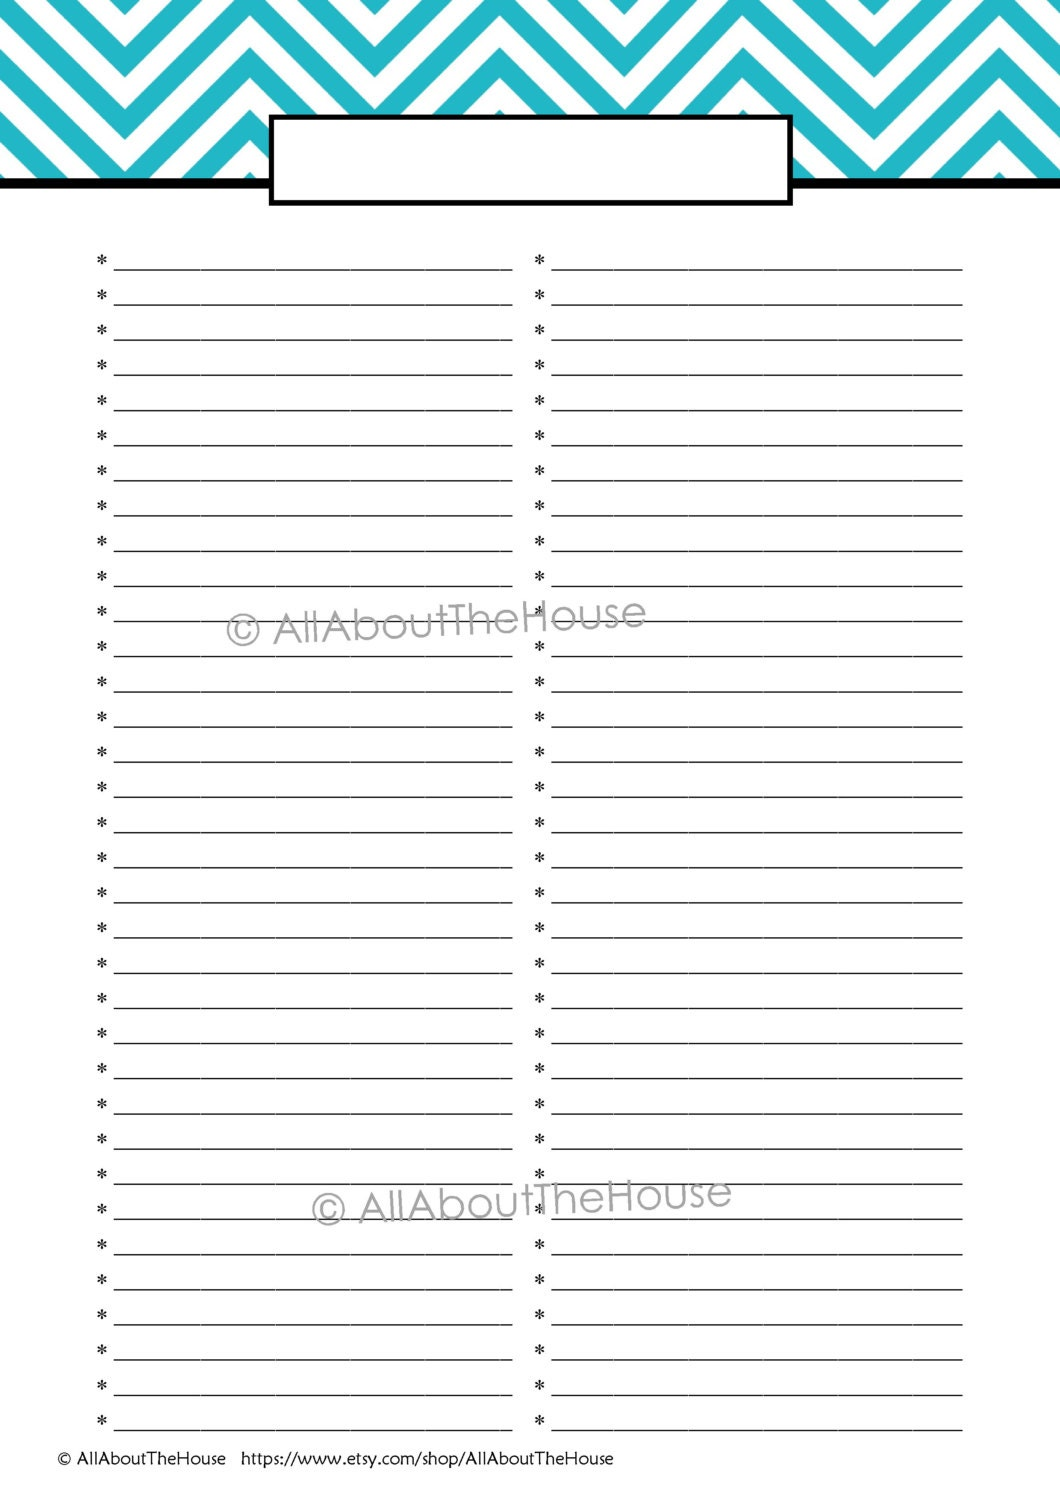 EDITABLE Printable To Do List Printable Shopping List - How to create an invoice on word online clothing stores for juniors